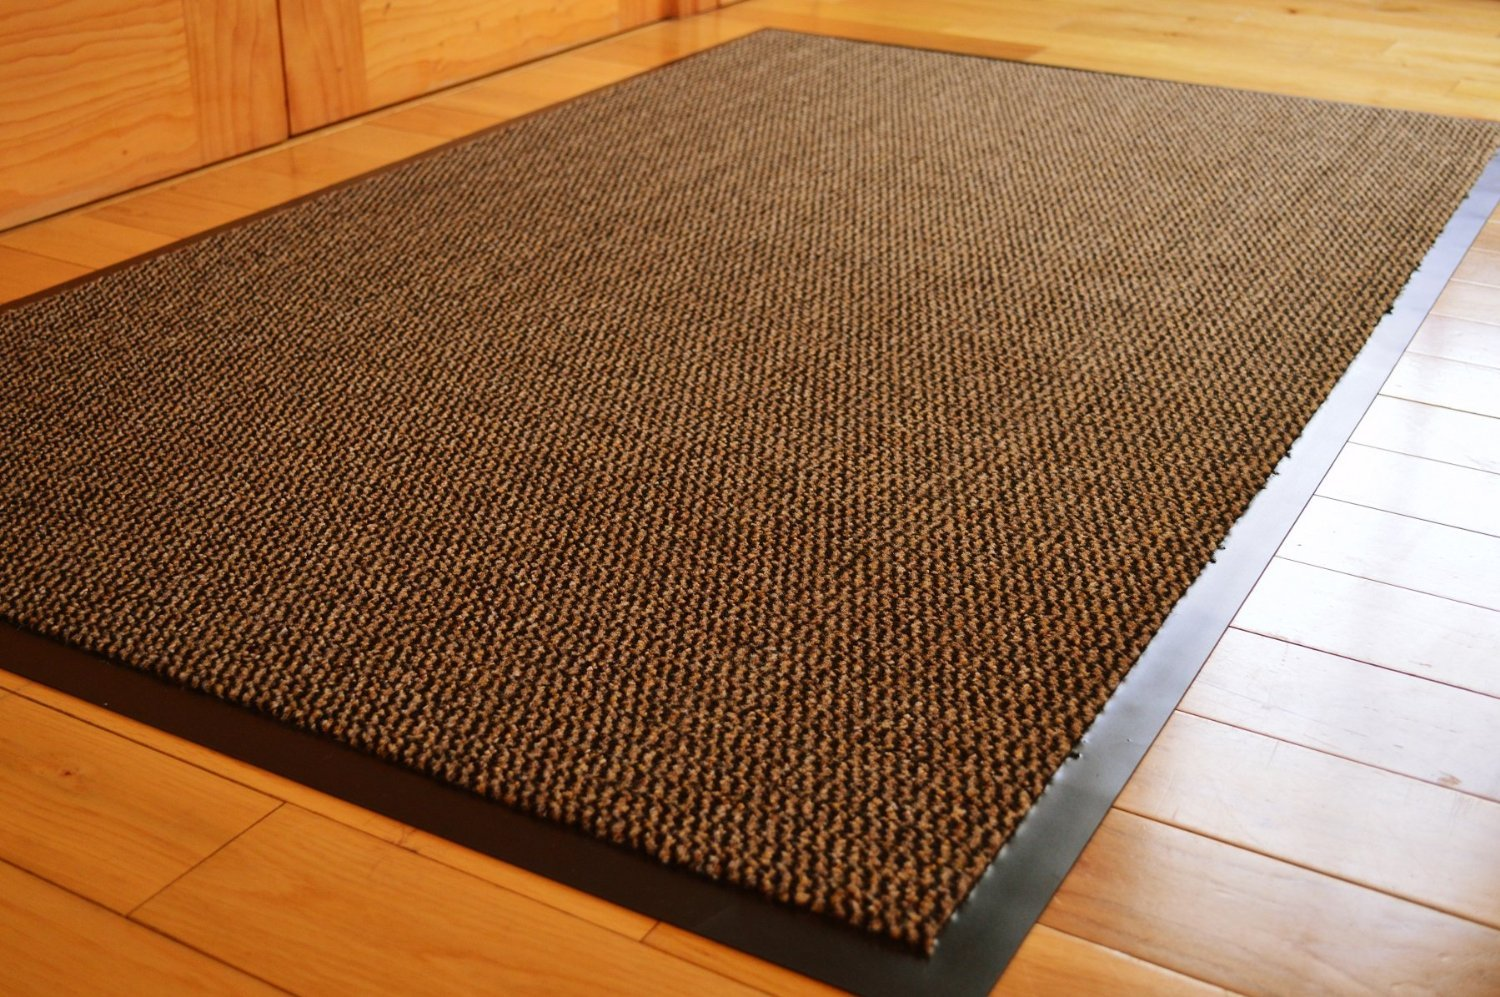 BARRIER MAT LARGE BROWN /BLACK DOOR MAT RUBBER BACKED MEDIUM RUNNER BARRIER MATS RUG PVC EDGED KITCHEN MAT(90 X 150 CM) Amazon.co.uk Kitchen \u0026 Home & BARRIER MAT LARGE BROWN /BLACK DOOR MAT RUBBER BACKED MEDIUM RUNNER ...